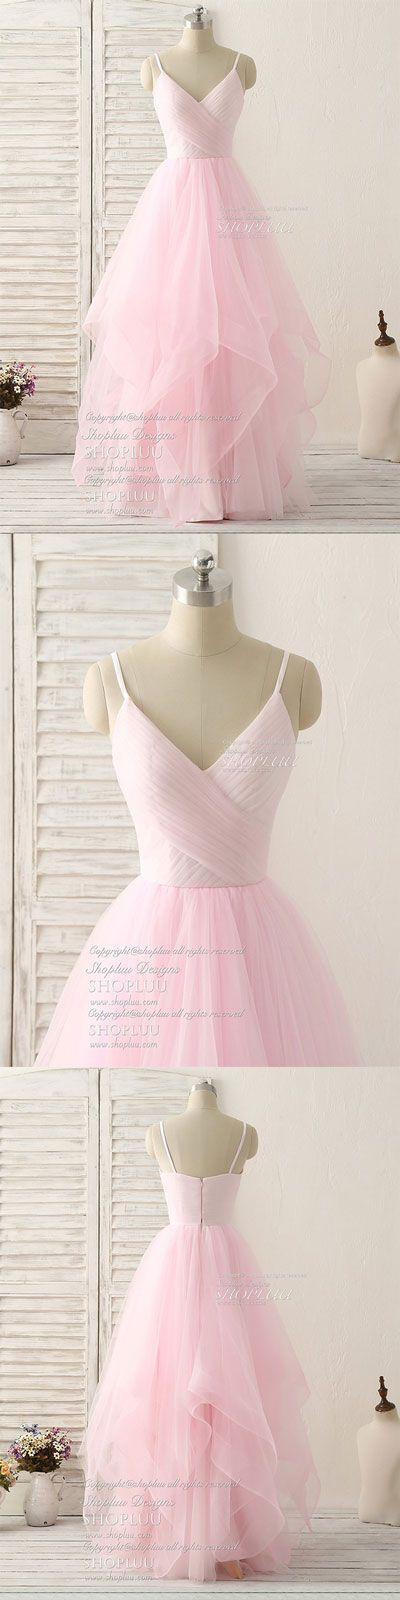 Pink v neck tulle long prom dress simple pink tulle evening dress M1071